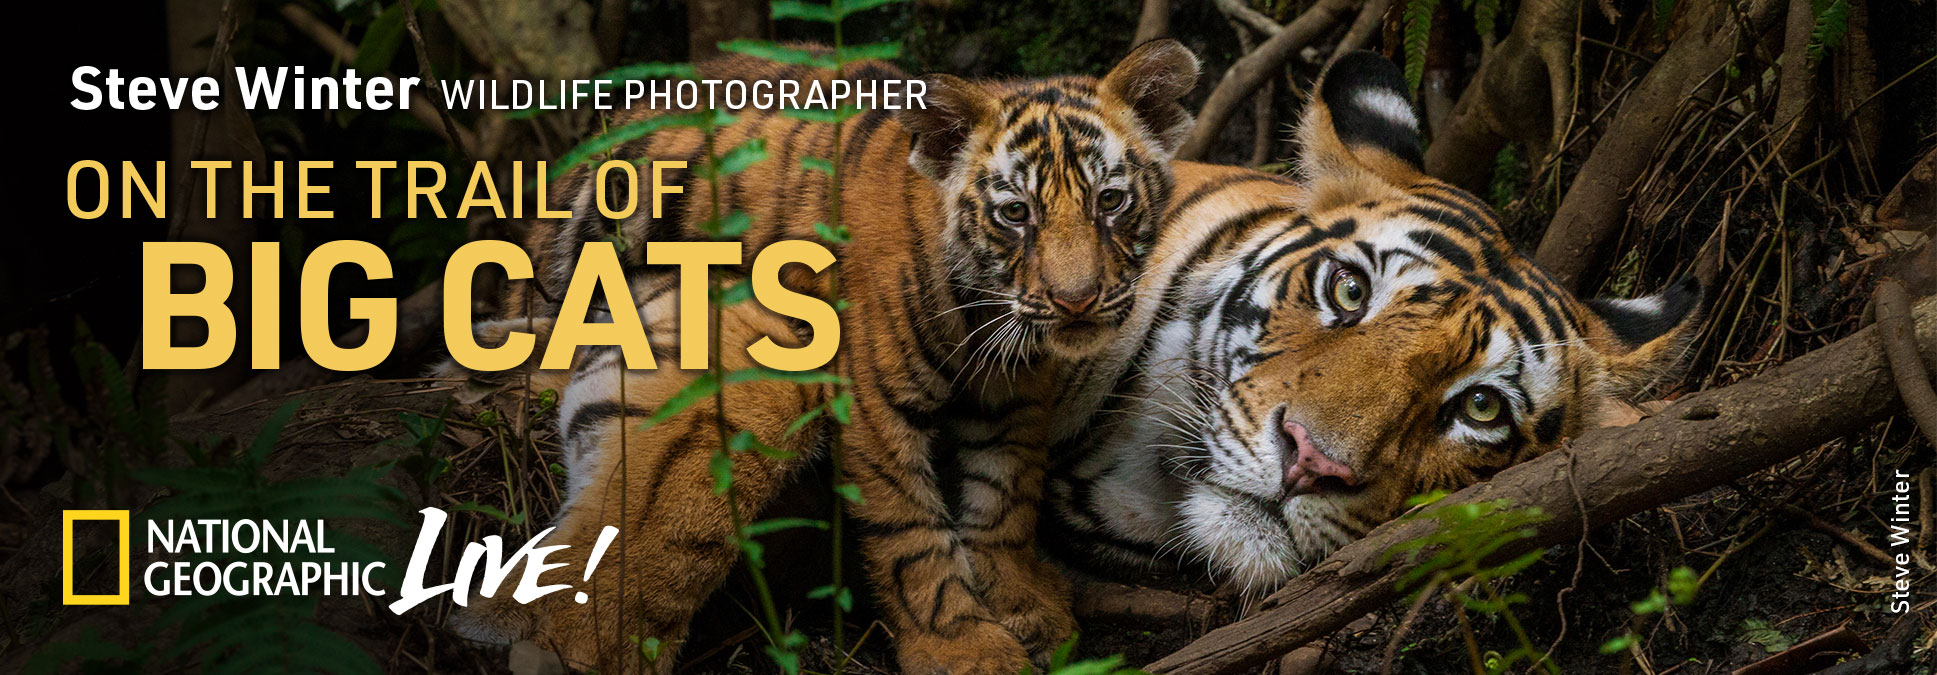 National Geographic LIVE! On the Trail of Big Cats with photographer Steve Winter